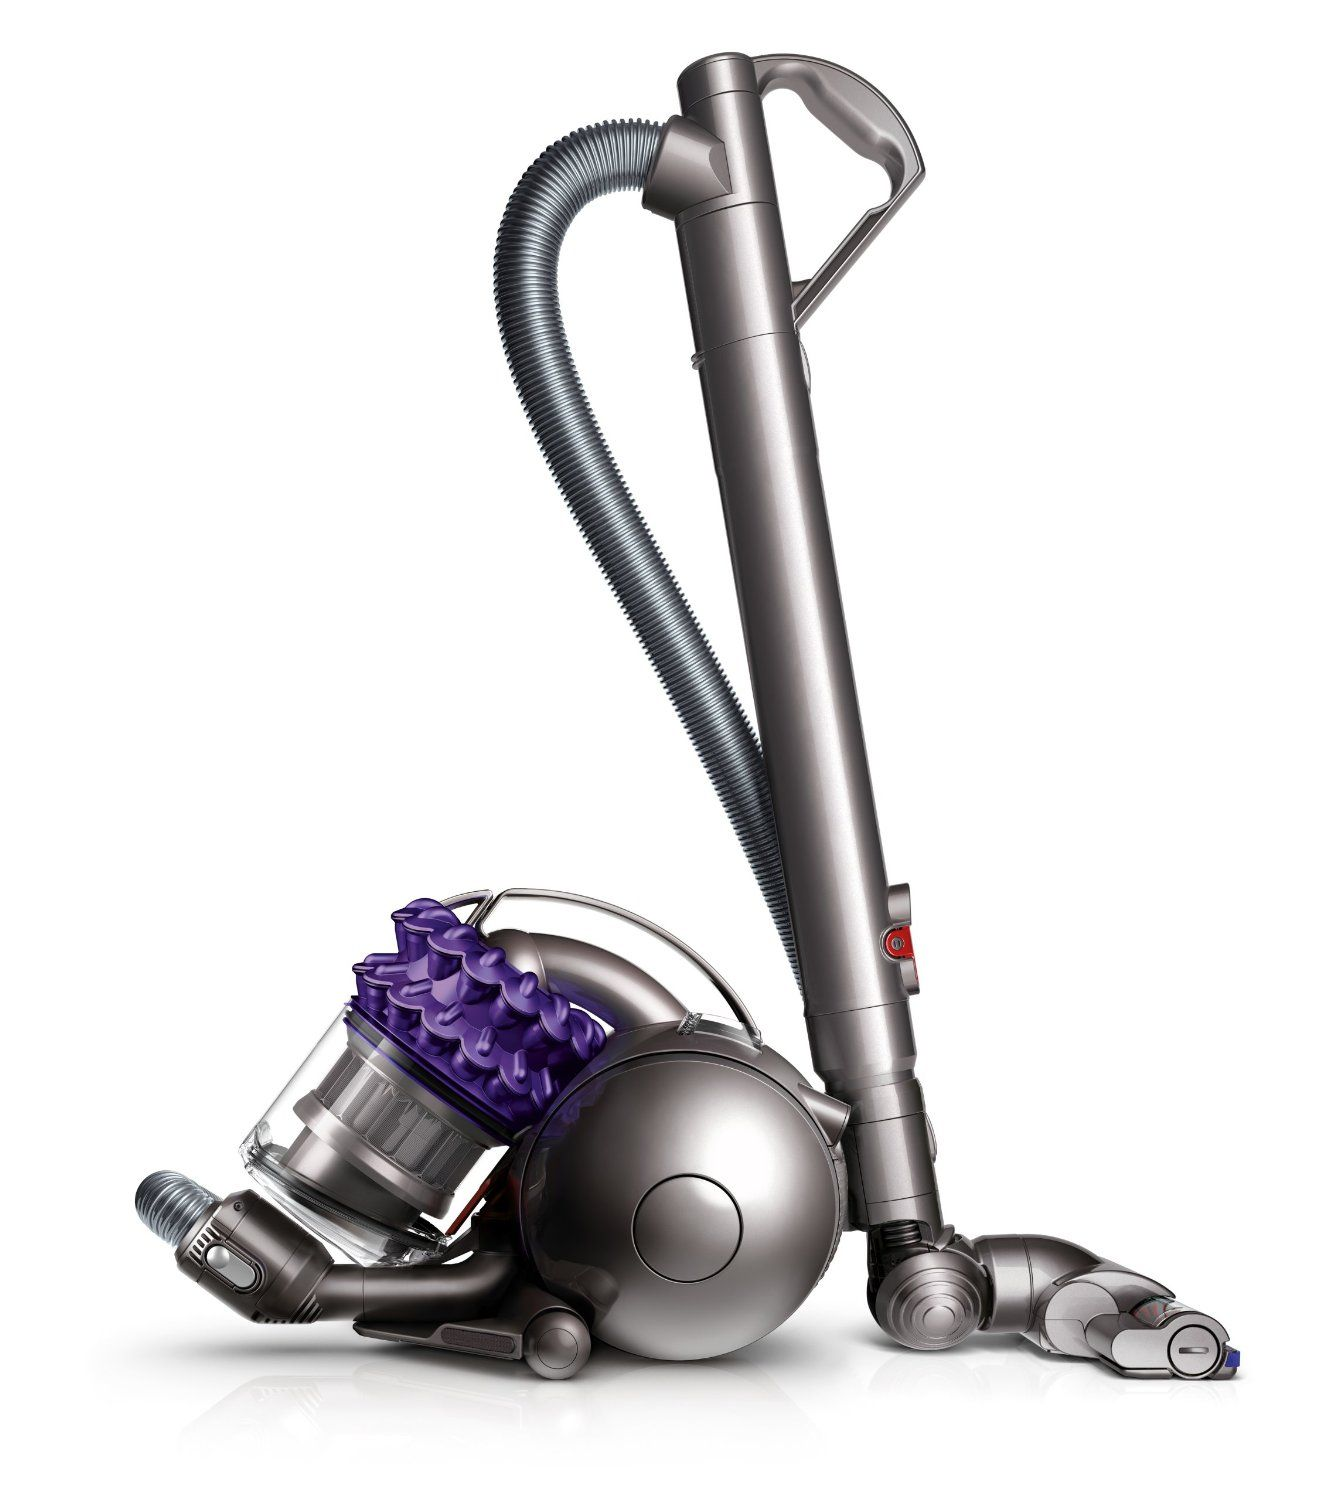 Dyson Dc47 Review How Does This Animal Perform Canister Vacuum Cleaner Canister Vacuum Dyson